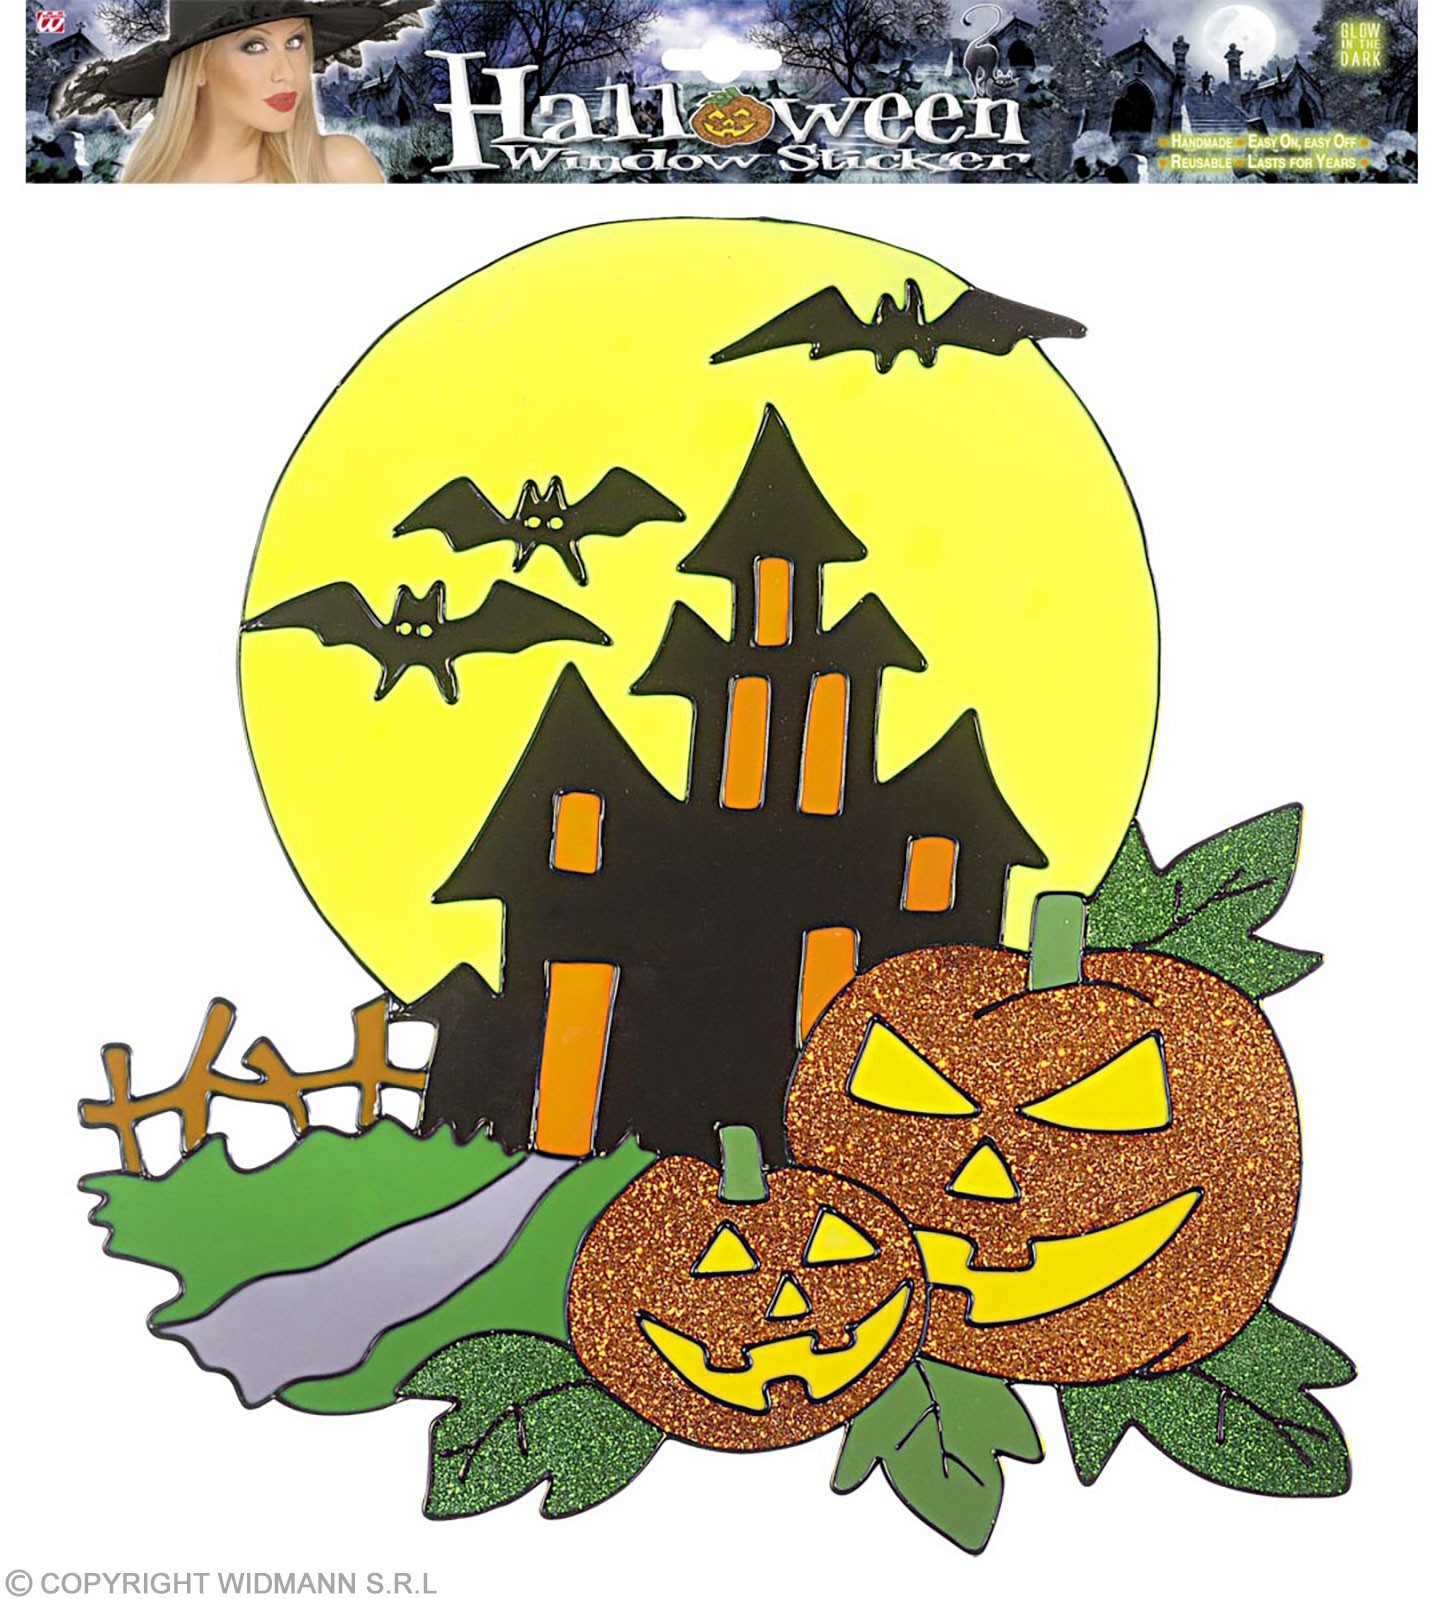 Haunted House & Pumpkins Window Stickers 3, Fancy Dress (Halloween)